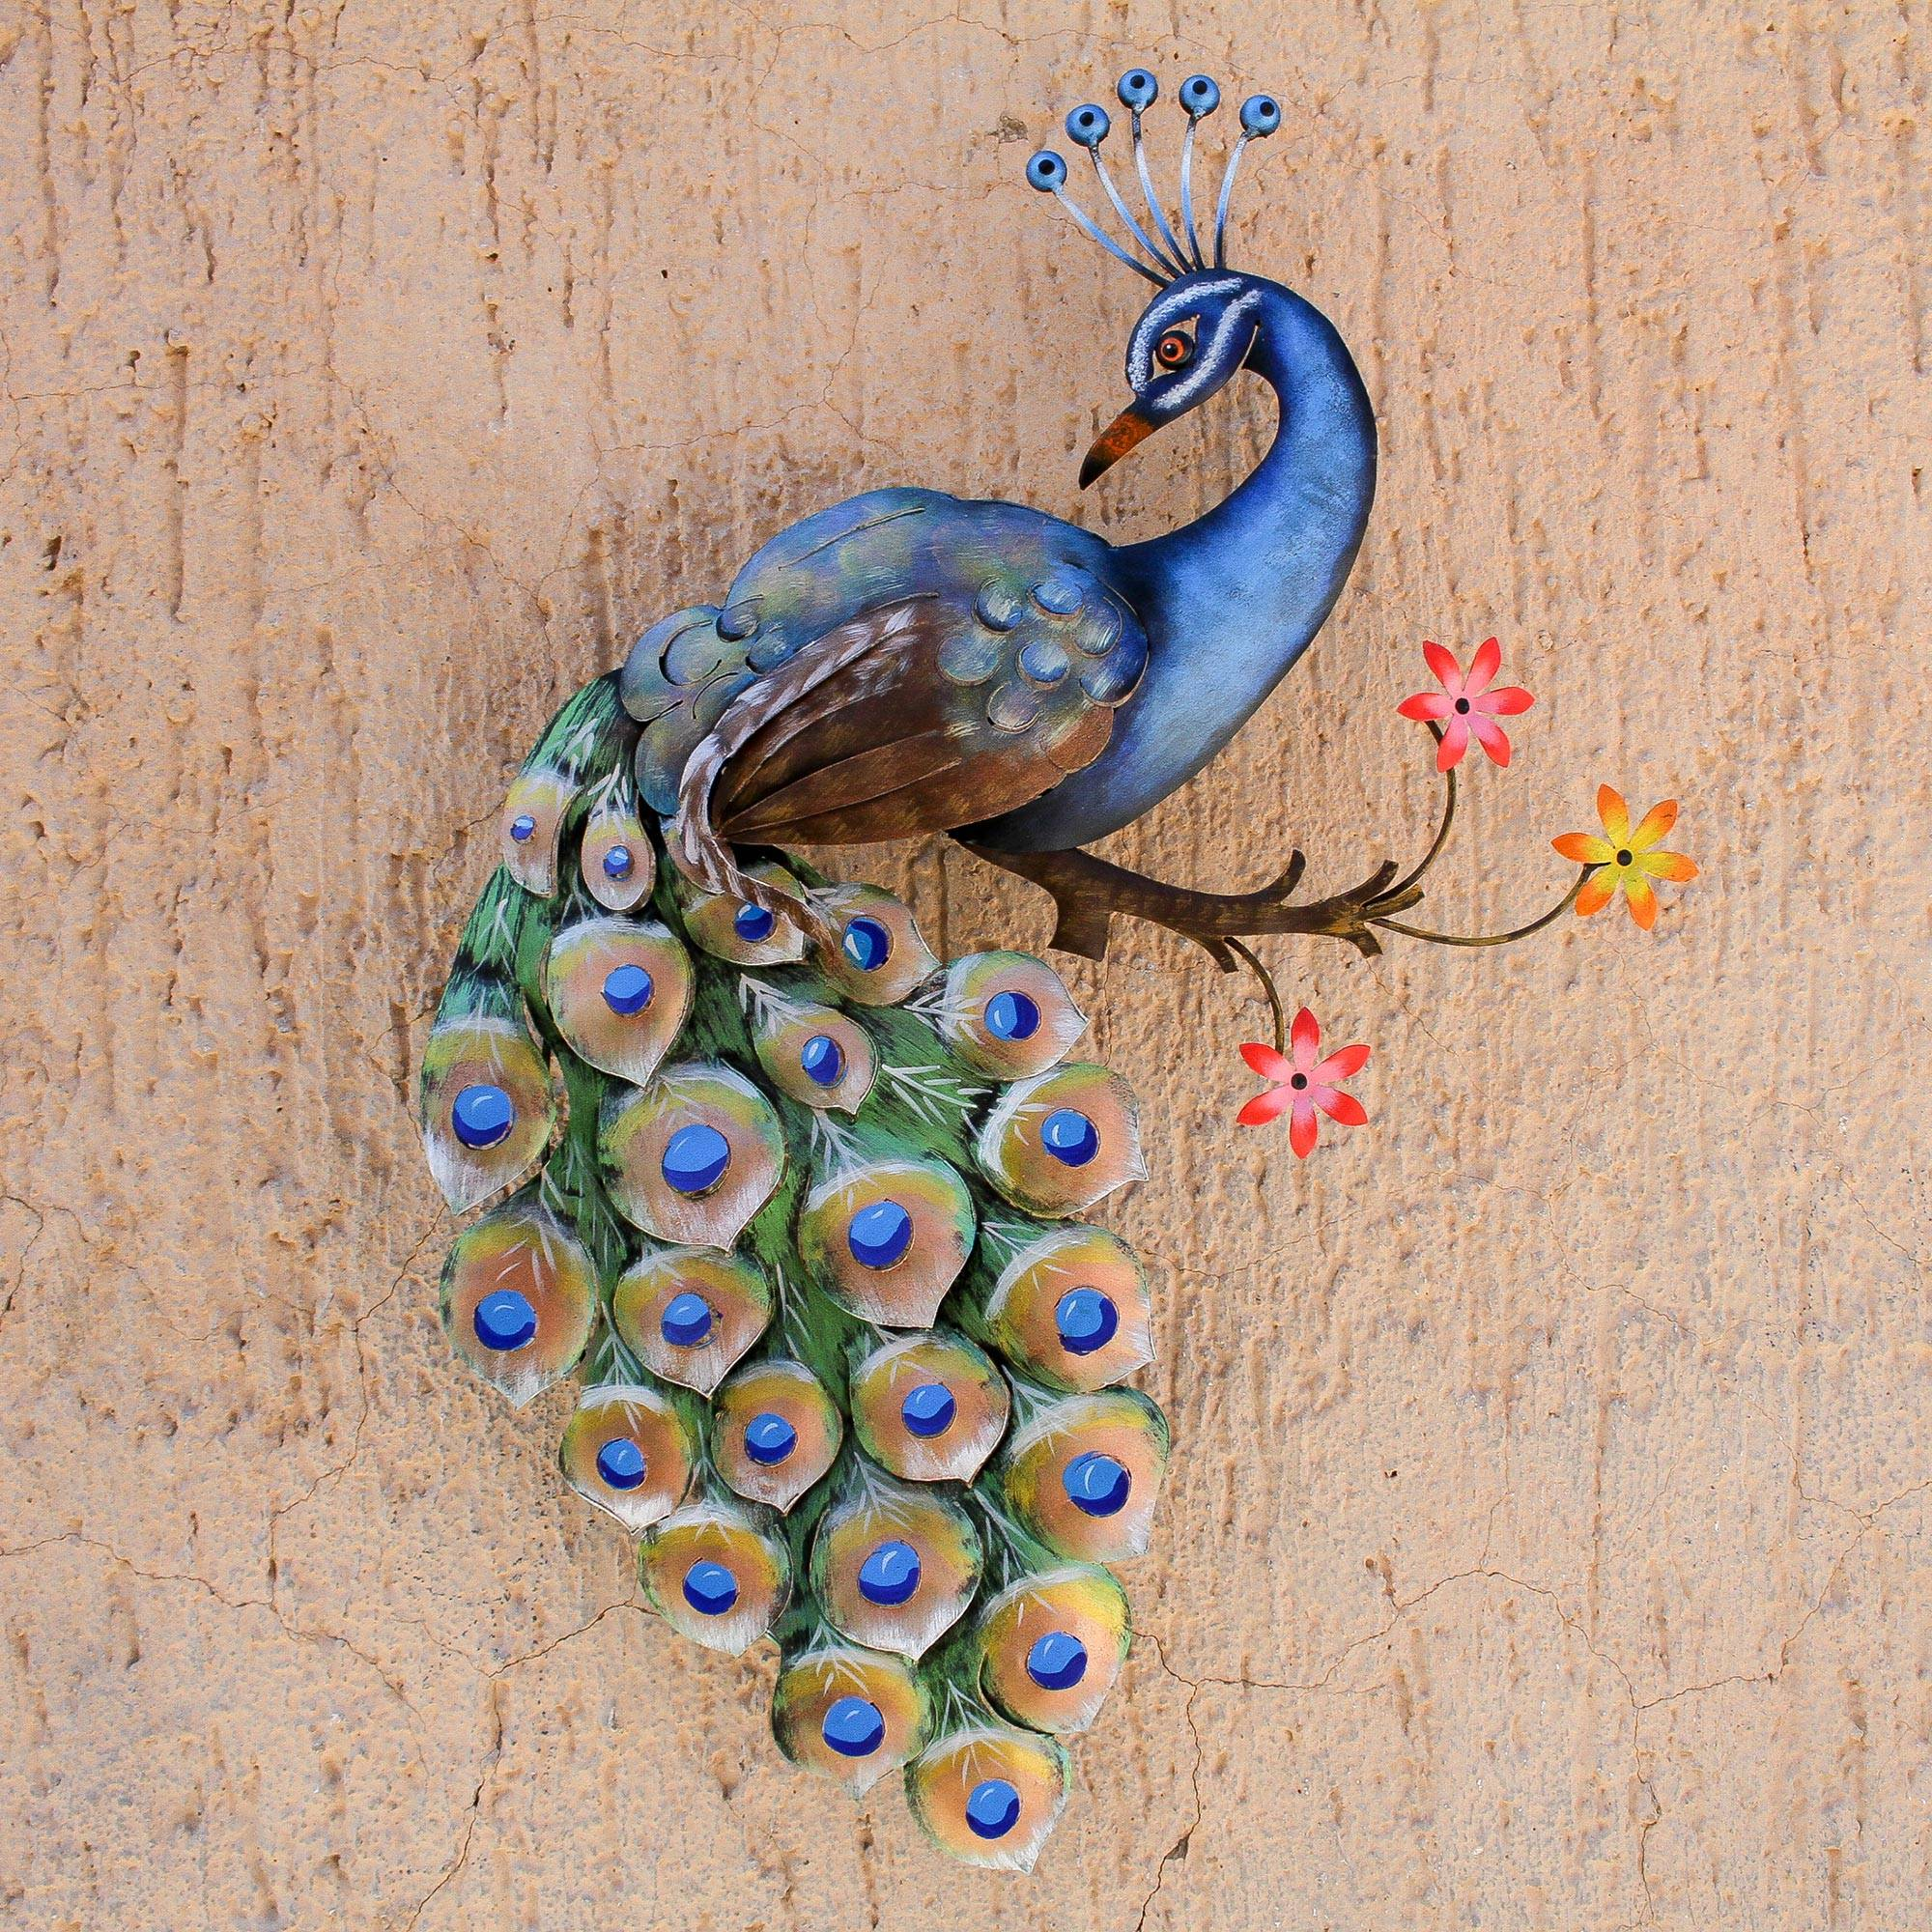 Floral Steel Peacock Wall Sculpture From Mexico Peacock And Flowers Novica